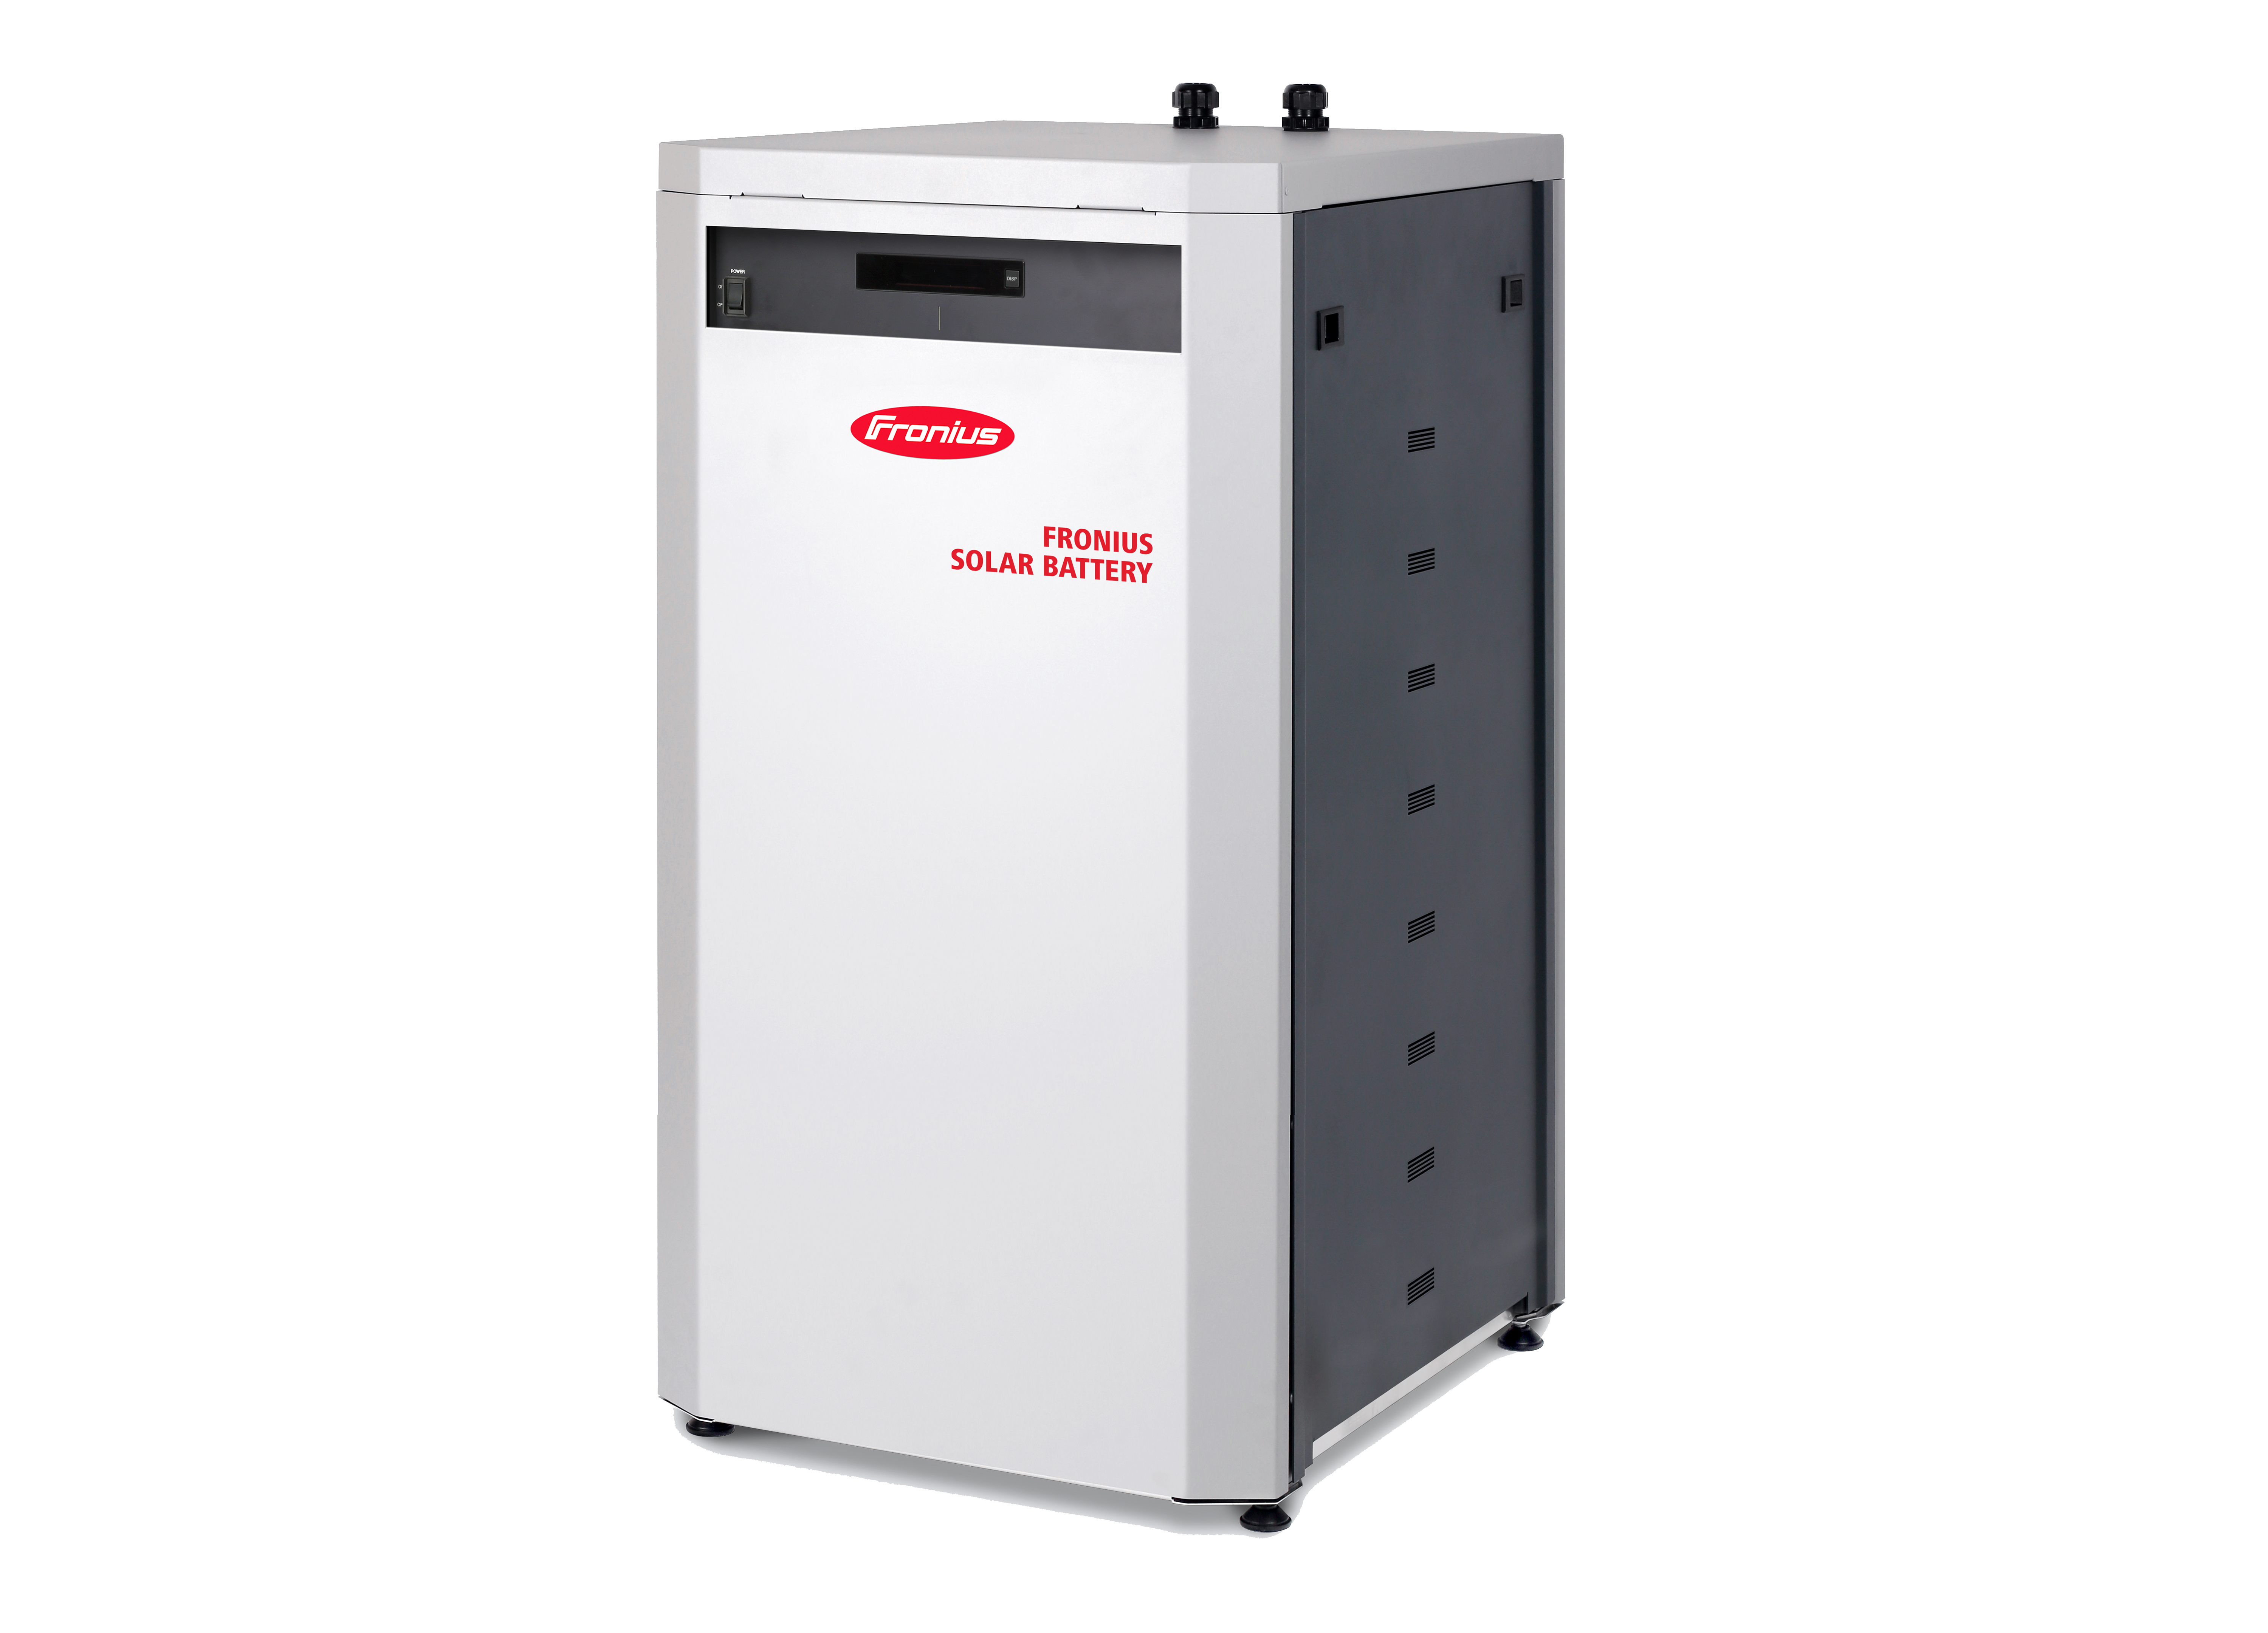 l tiov fronius fronius solar battery 6 0 eshop. Black Bedroom Furniture Sets. Home Design Ideas